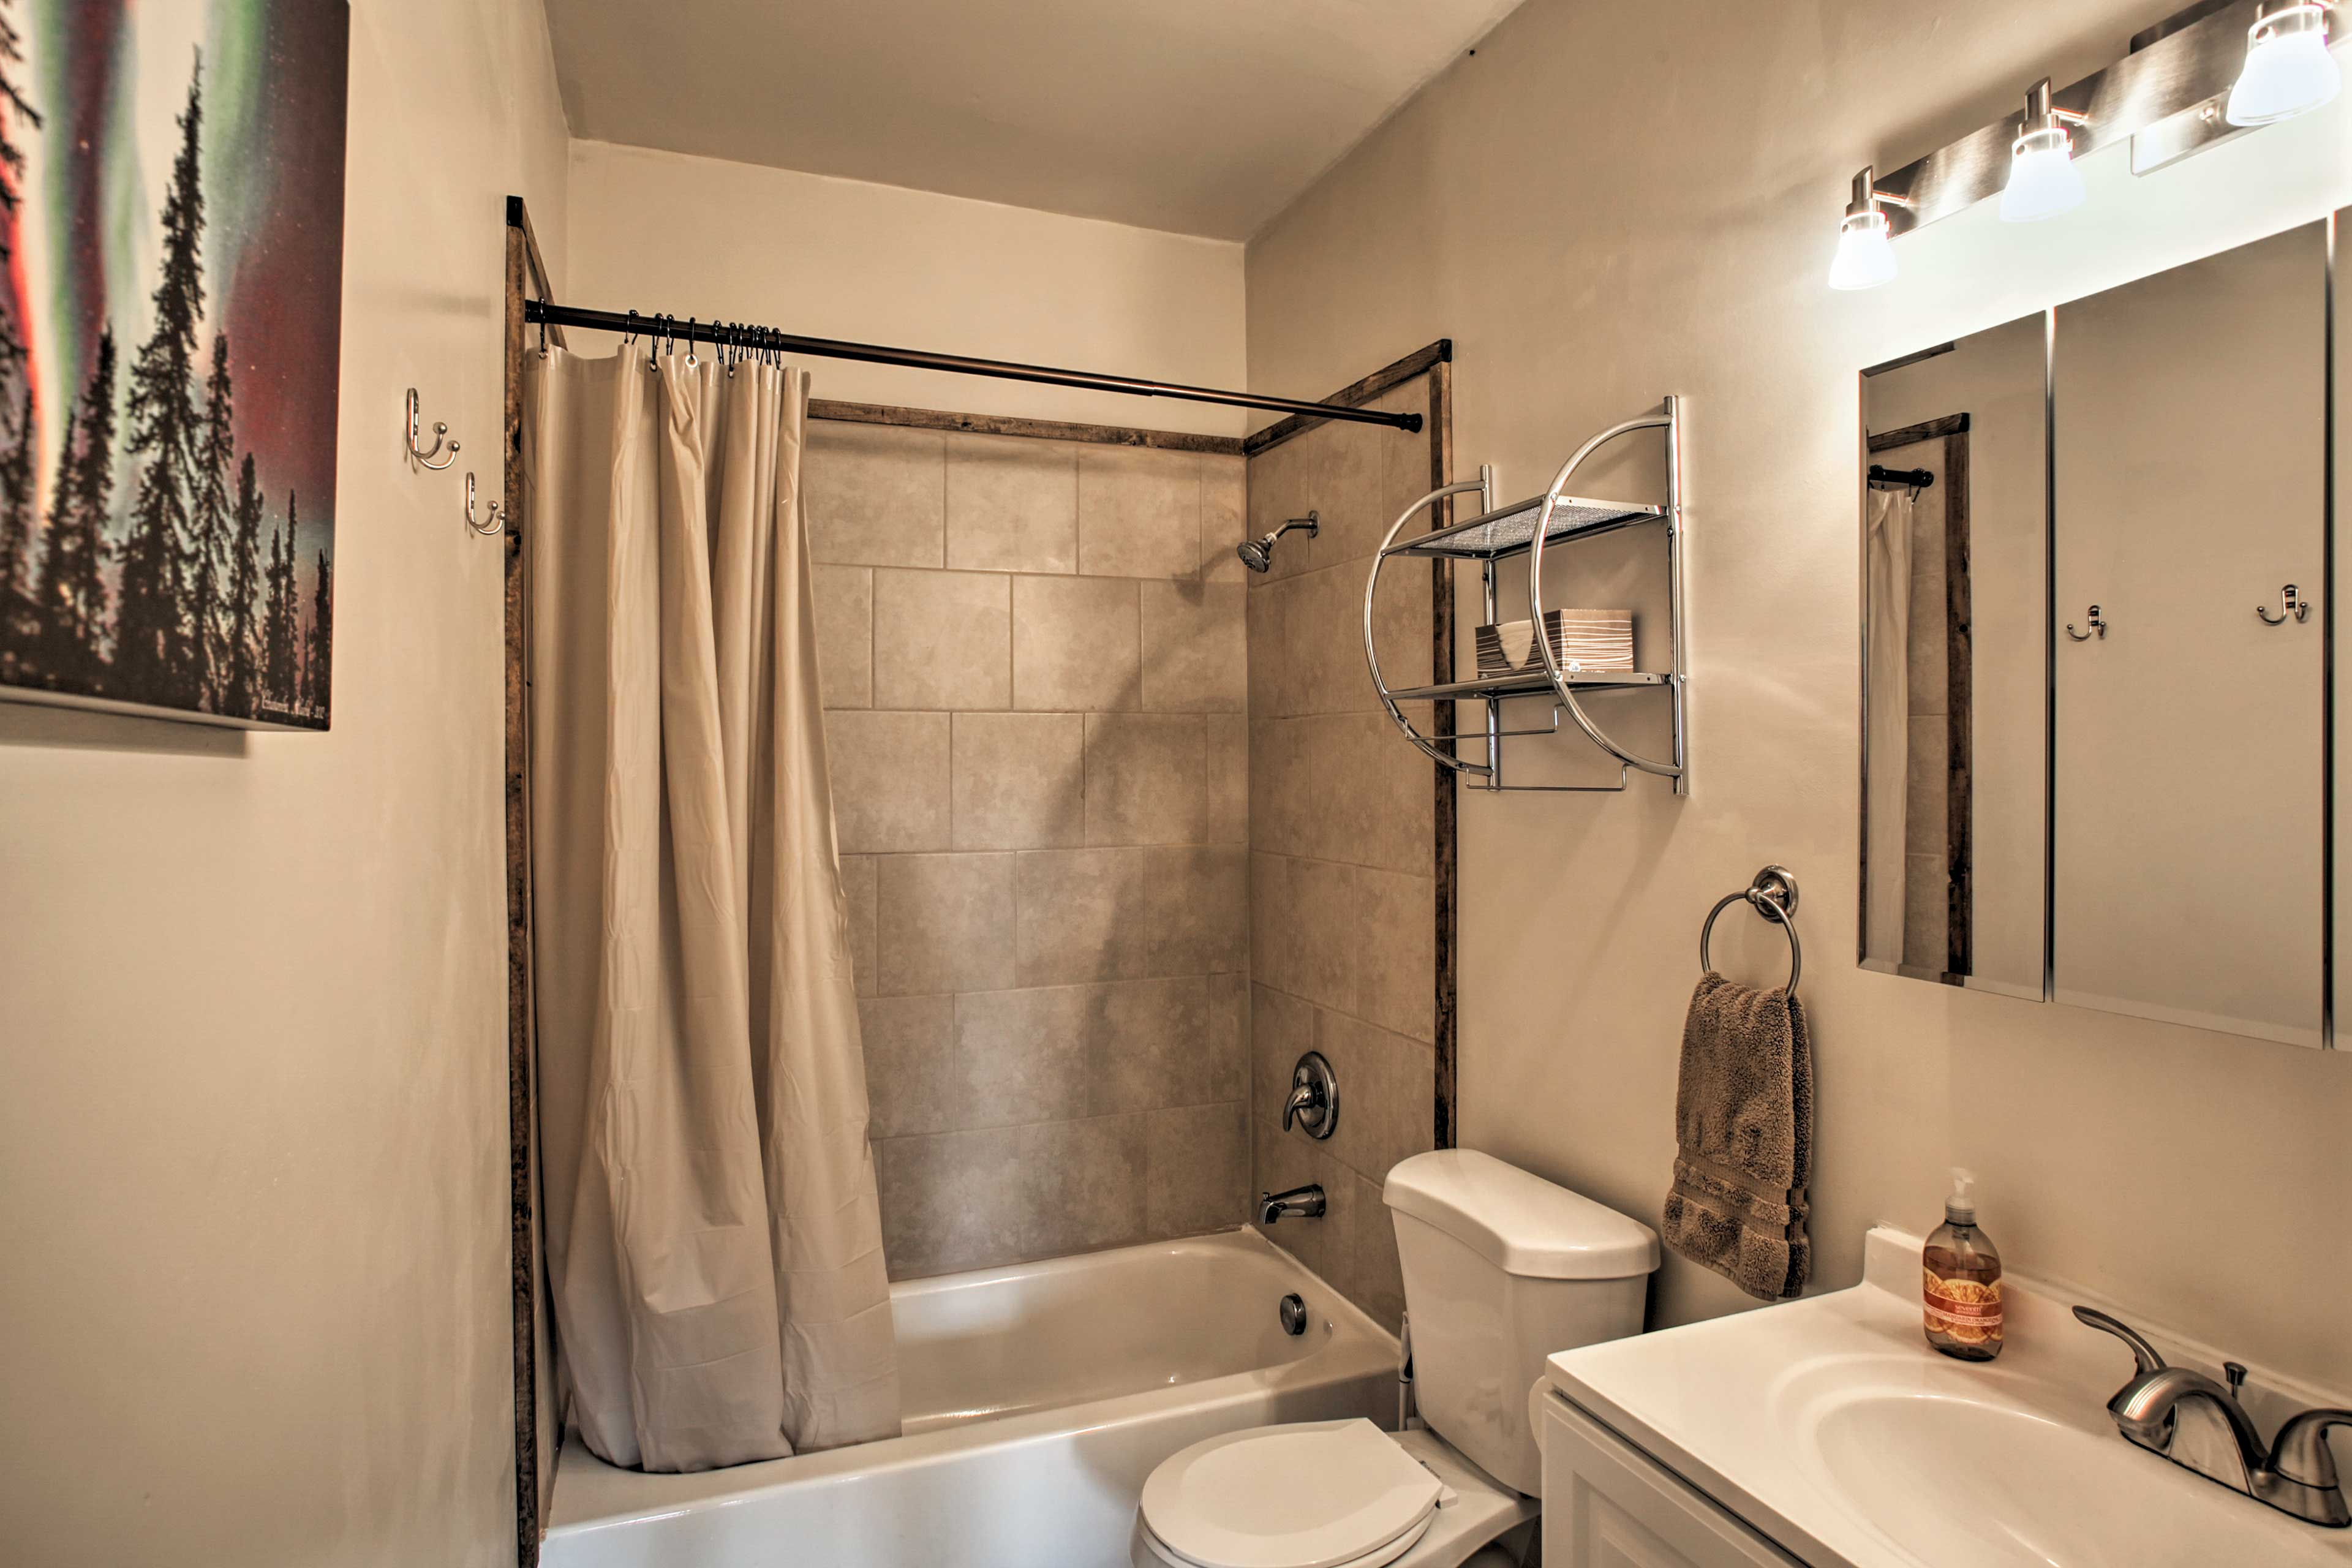 Each bathroom is stocked with towels.